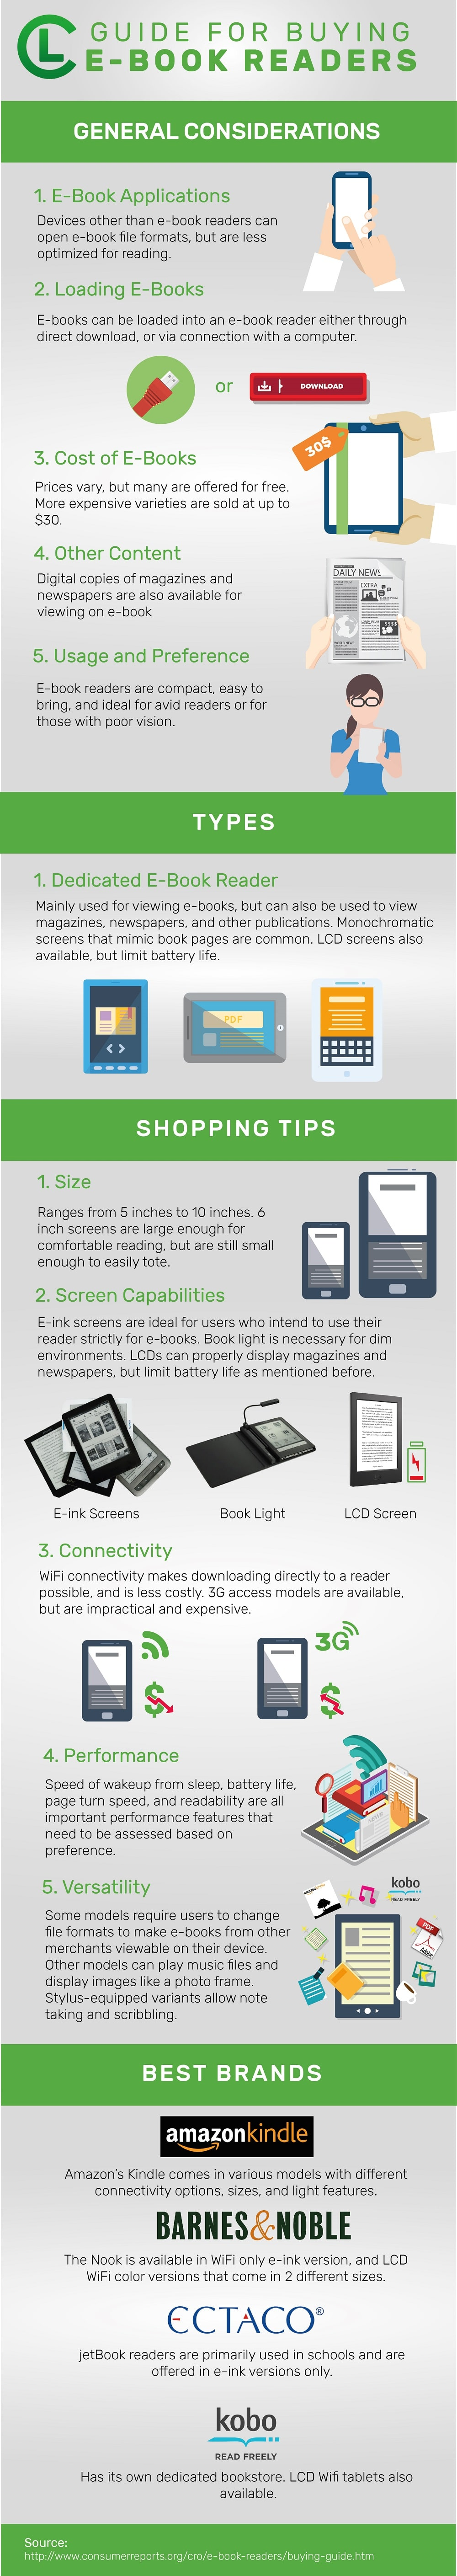 Guide For Buying eBook Readers Infographic